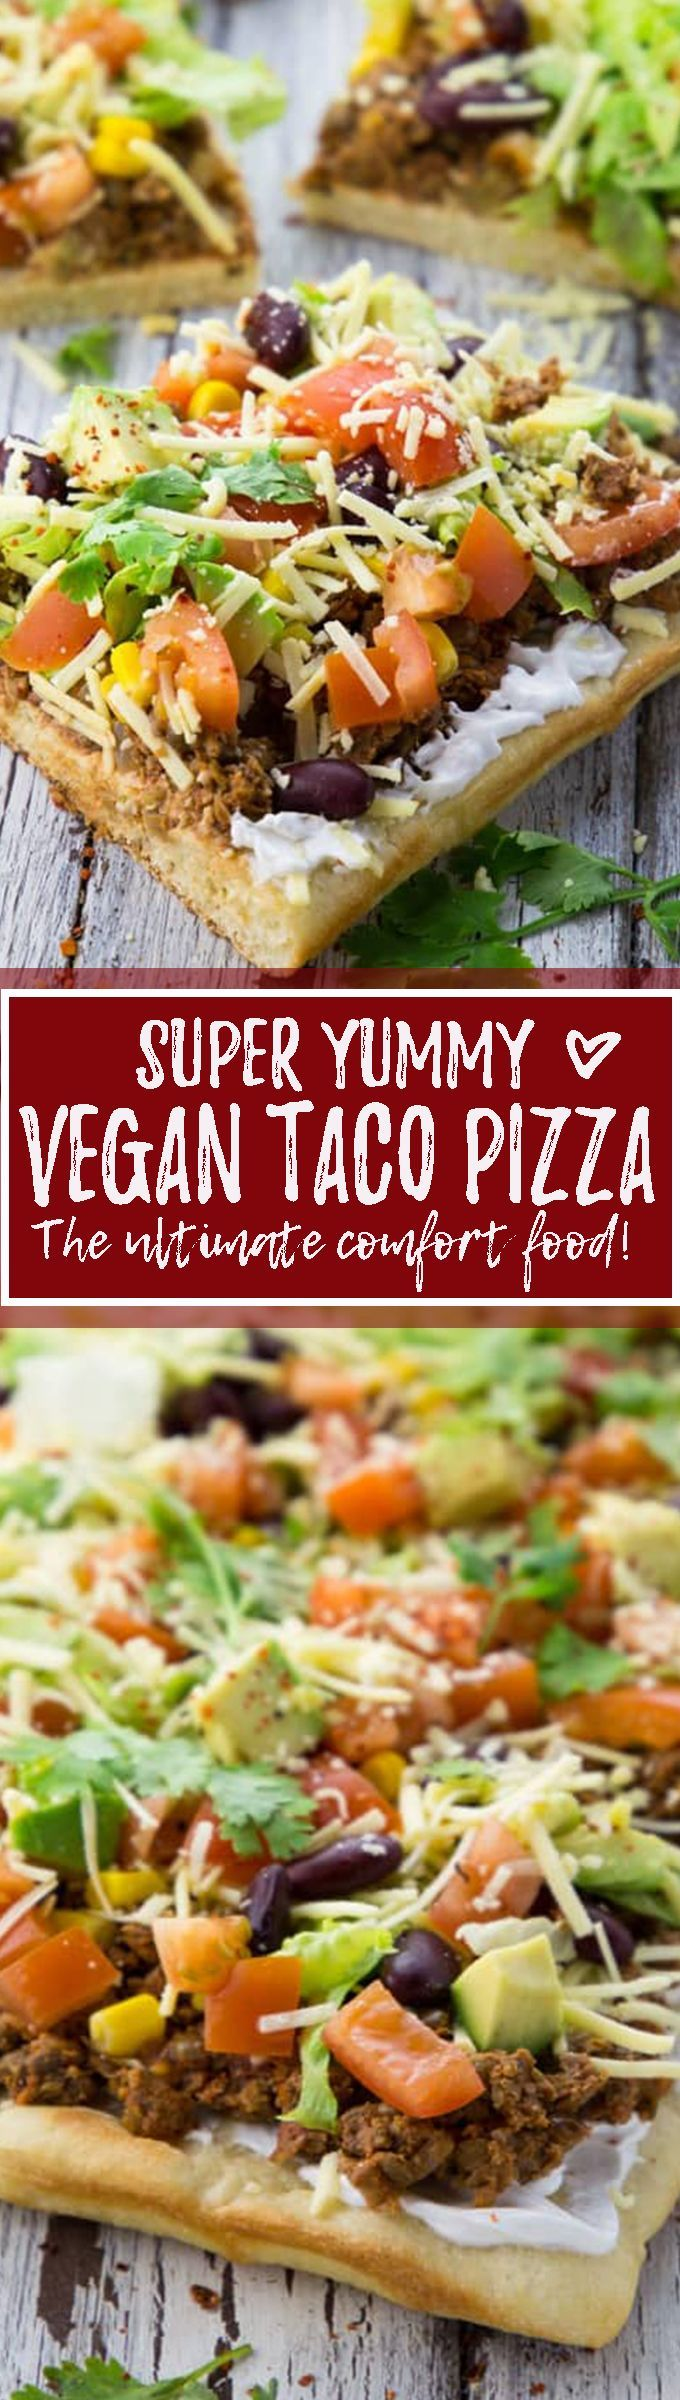 This vegan taco pizza with lentil walnut meat is the perfect comfort food! It's one of my favorite recipes. I mean how much better can pizza actually get?!